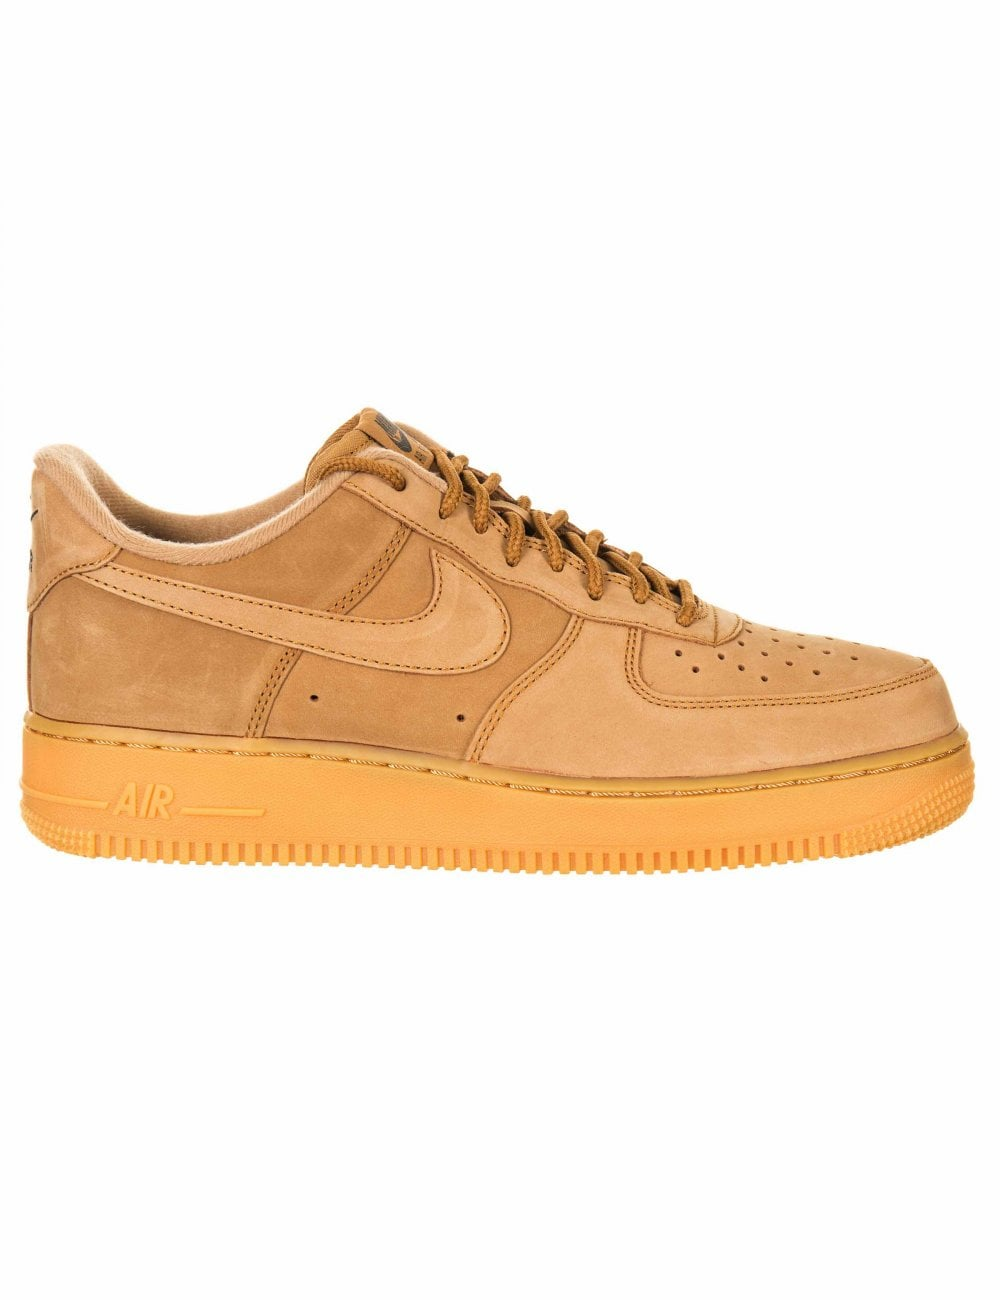 new style 30ec3 6b57d Air Force 1 '07 WB Trainers - Wheat